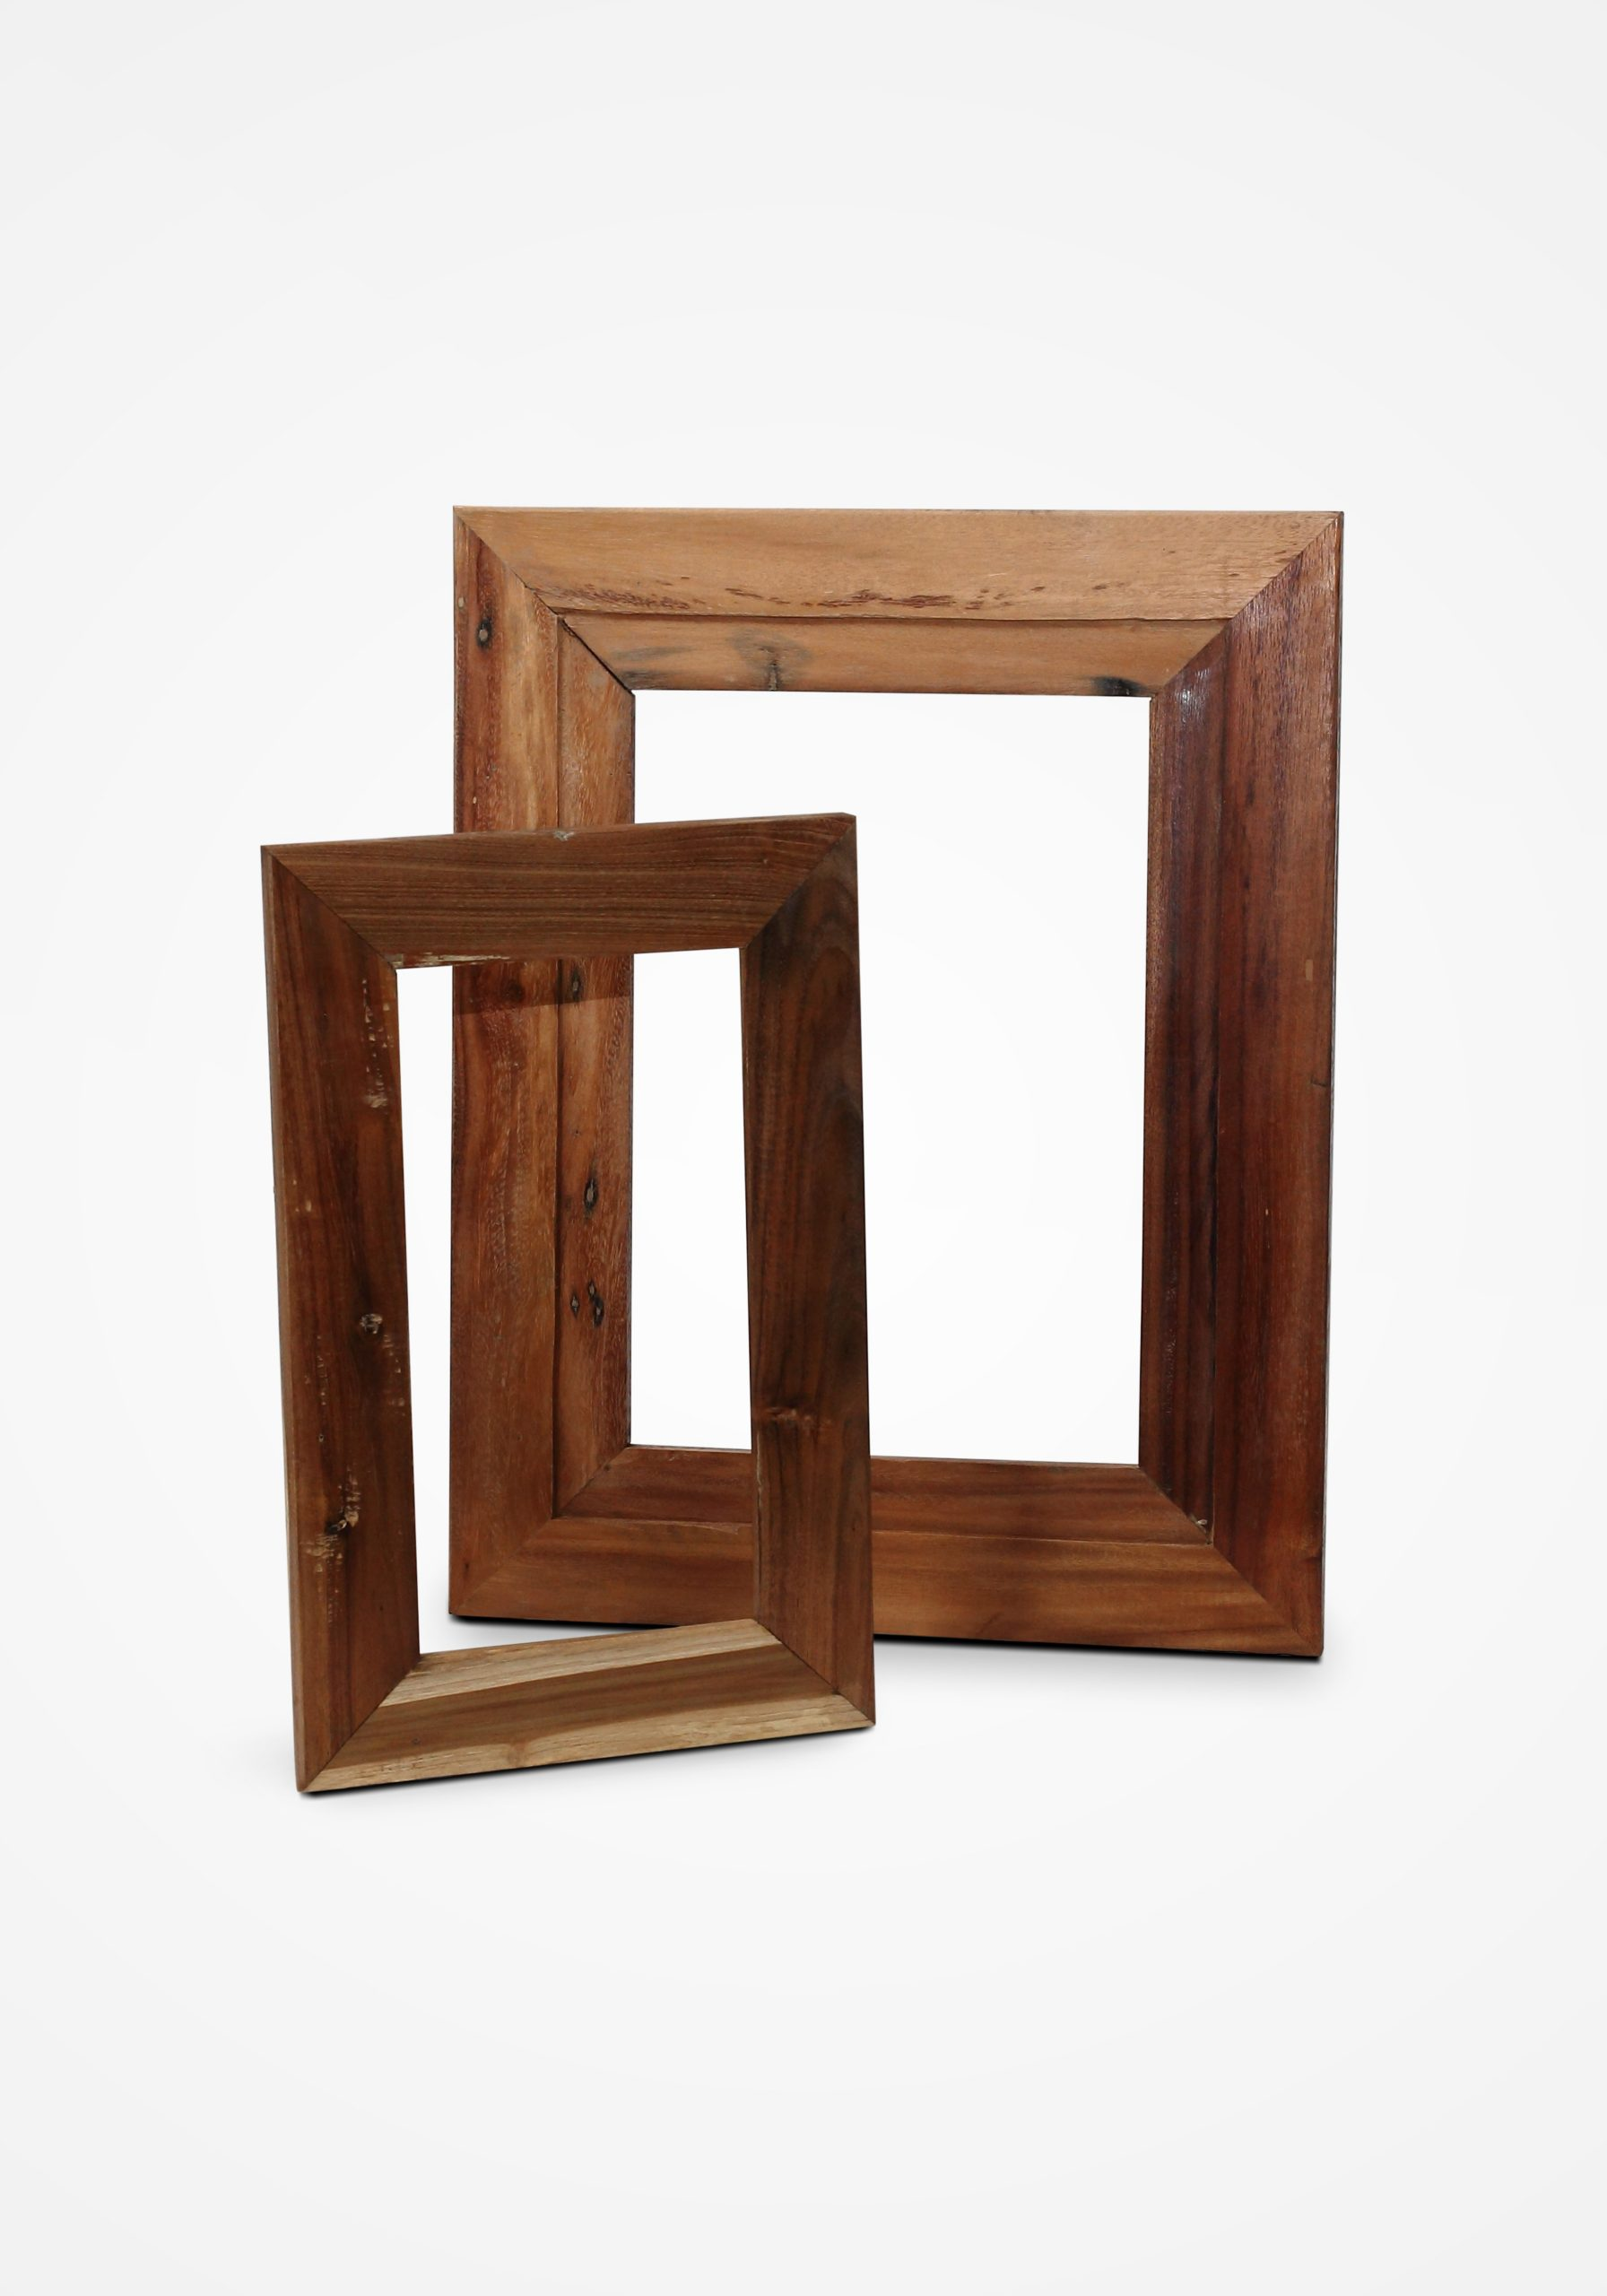 Wooden Photo Frame Furniture Whole